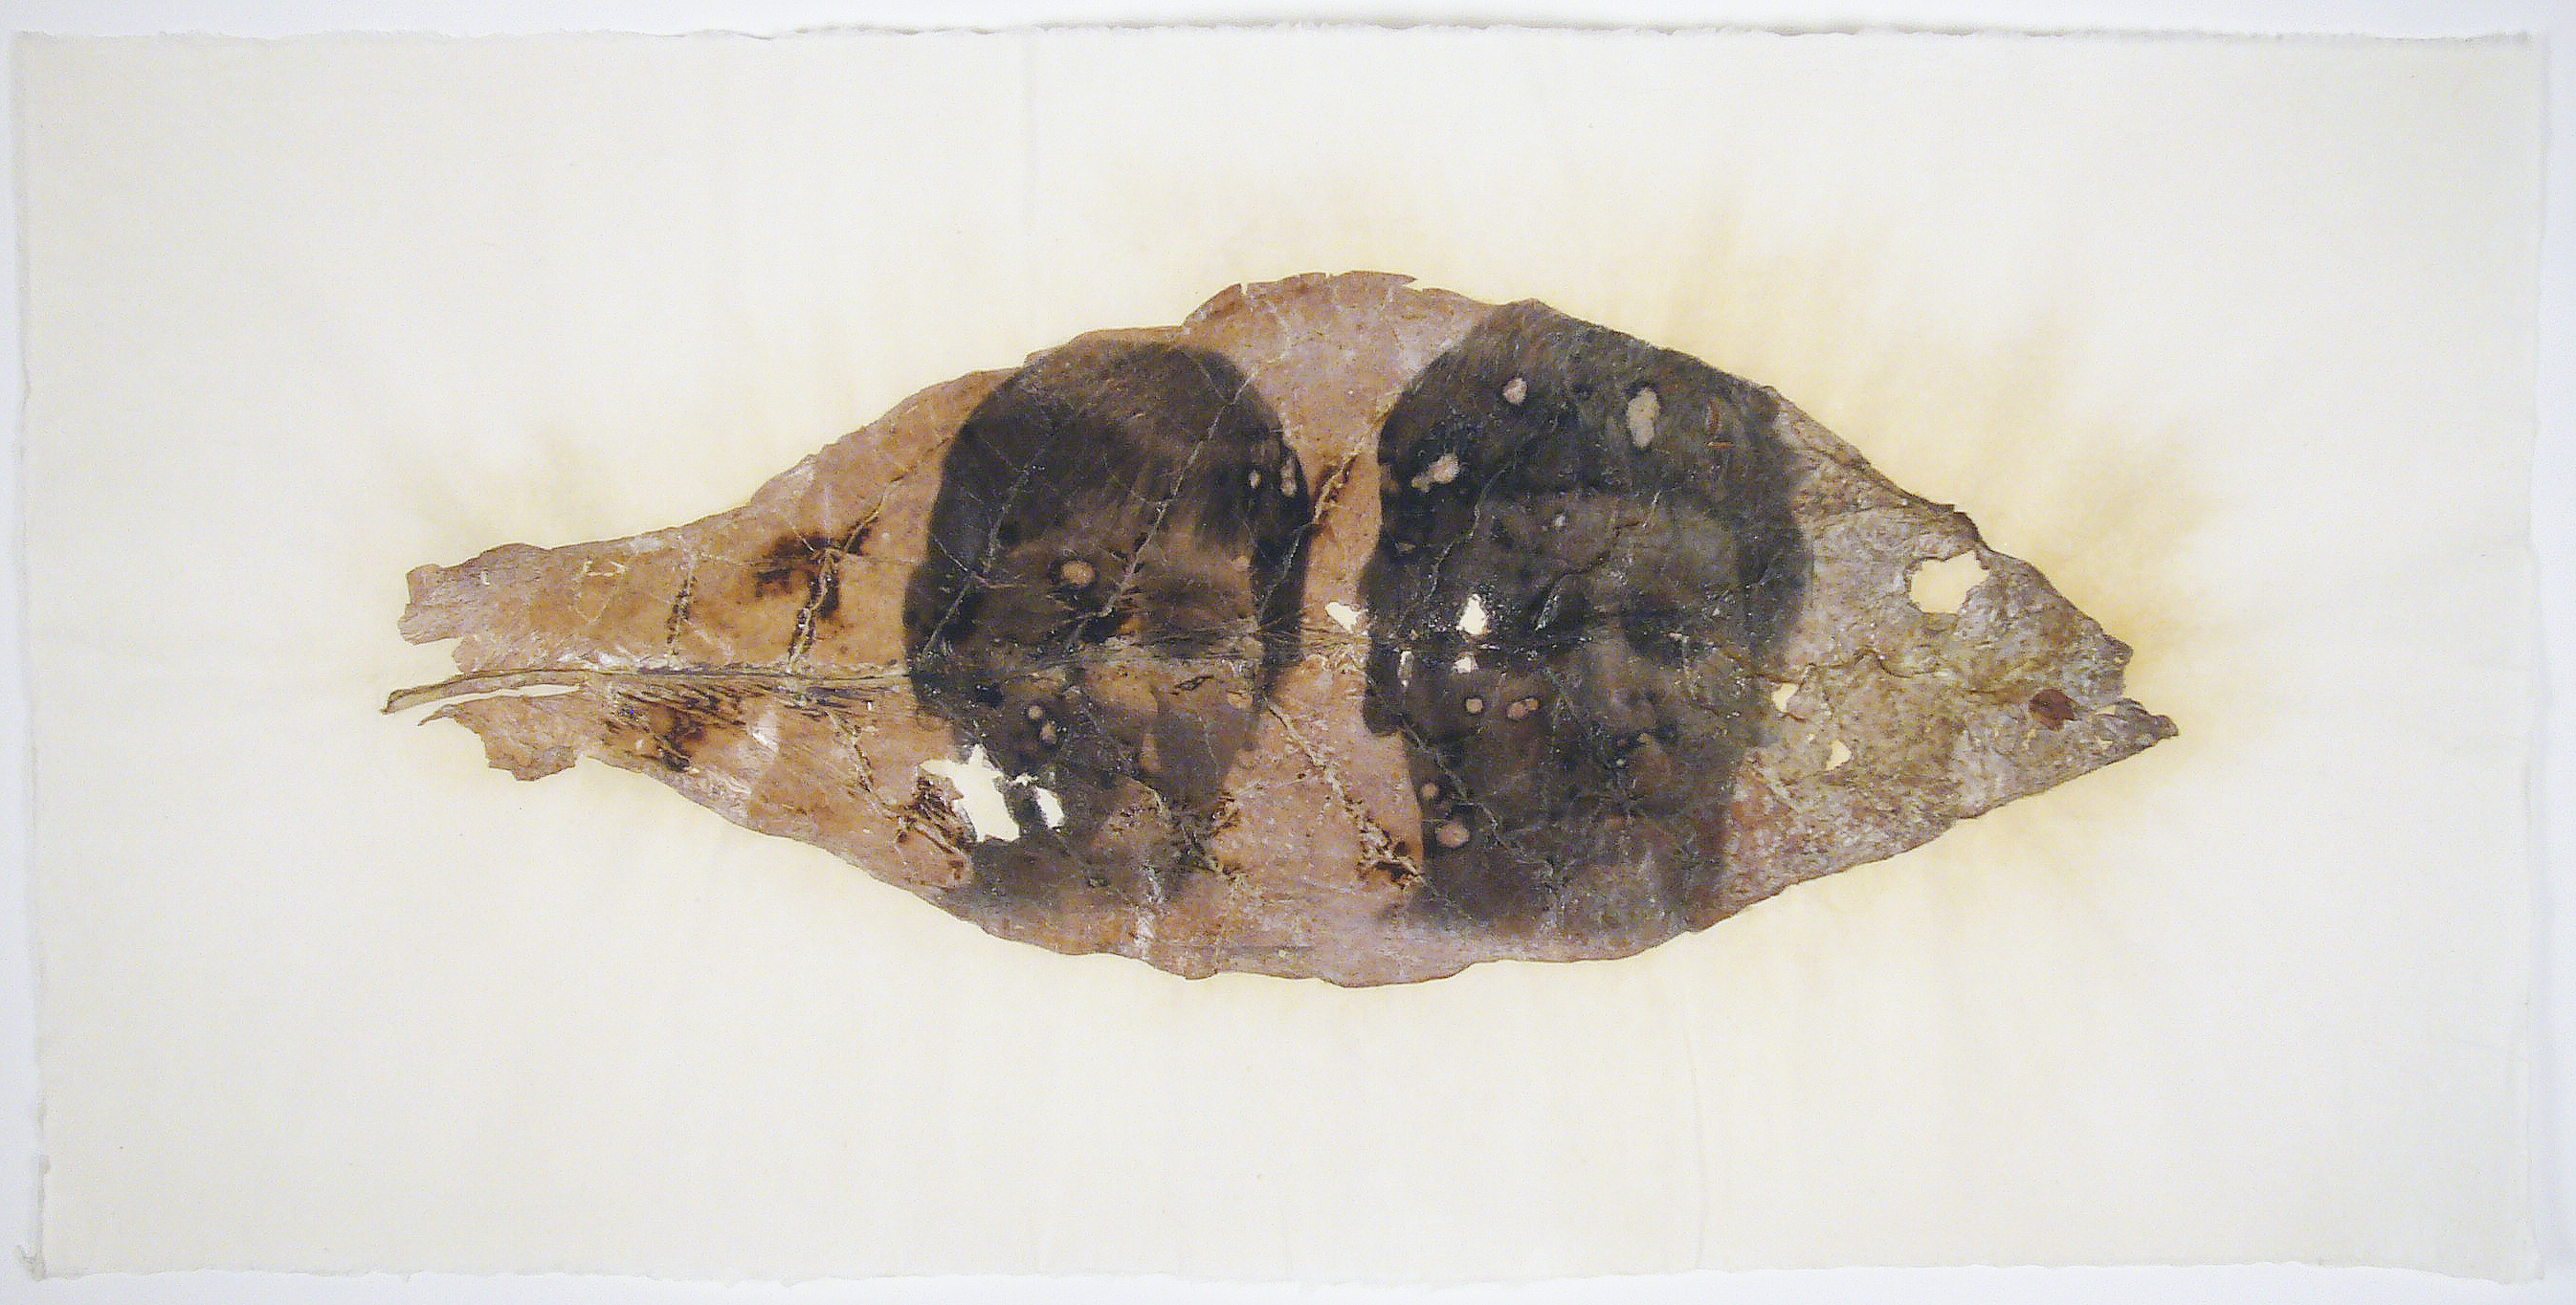 Accra Shepp, Mother and Son (Philpot KY), 2006, photo emulsion on tobacco leaf, 35 x 15 inches